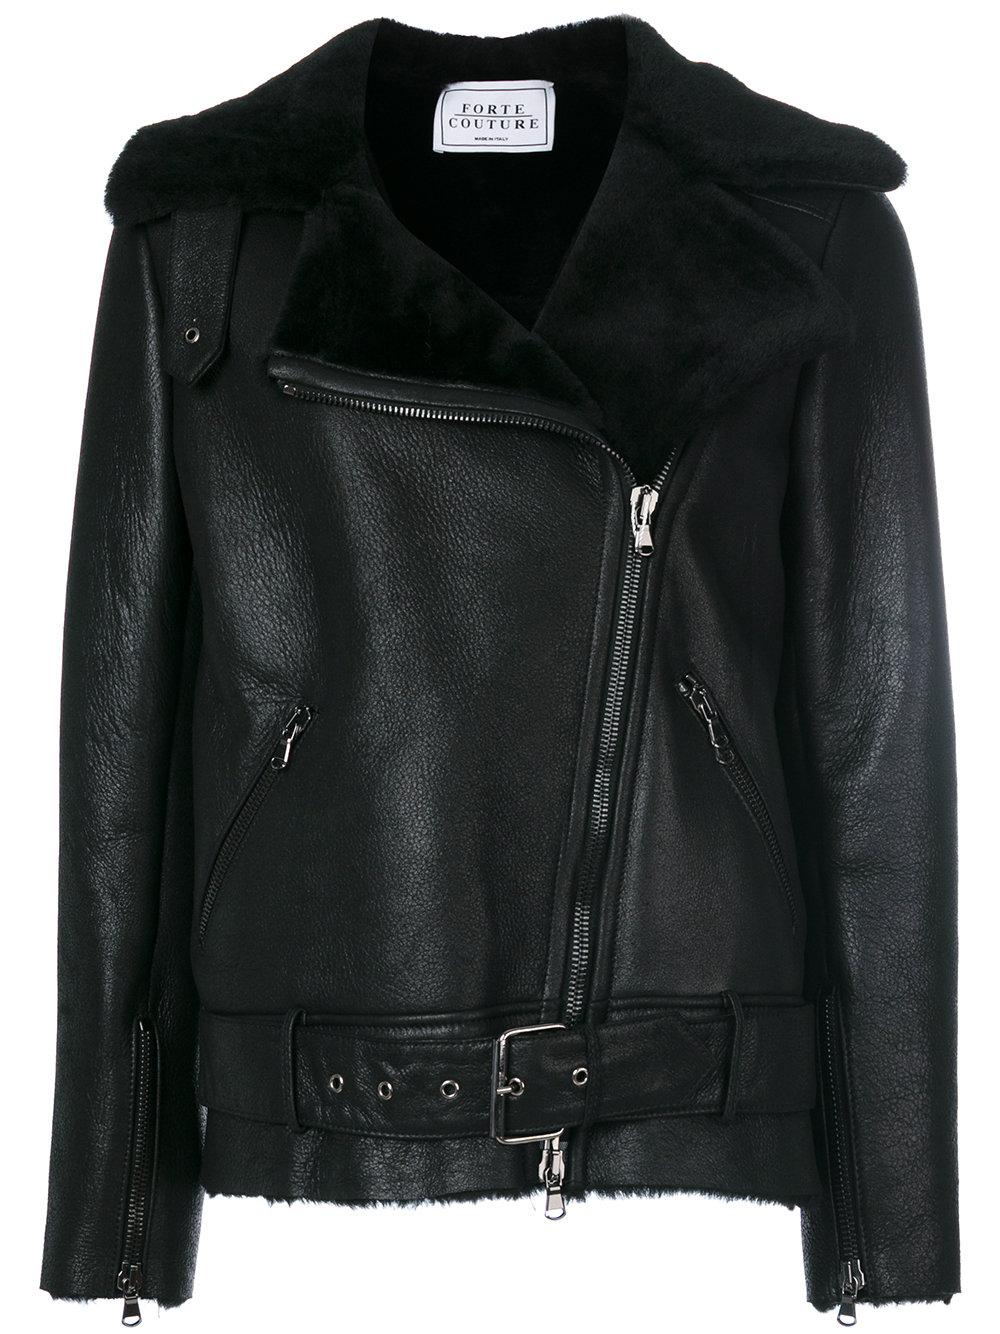 Forte couture Perfect Luxury Leather Jacket in Black